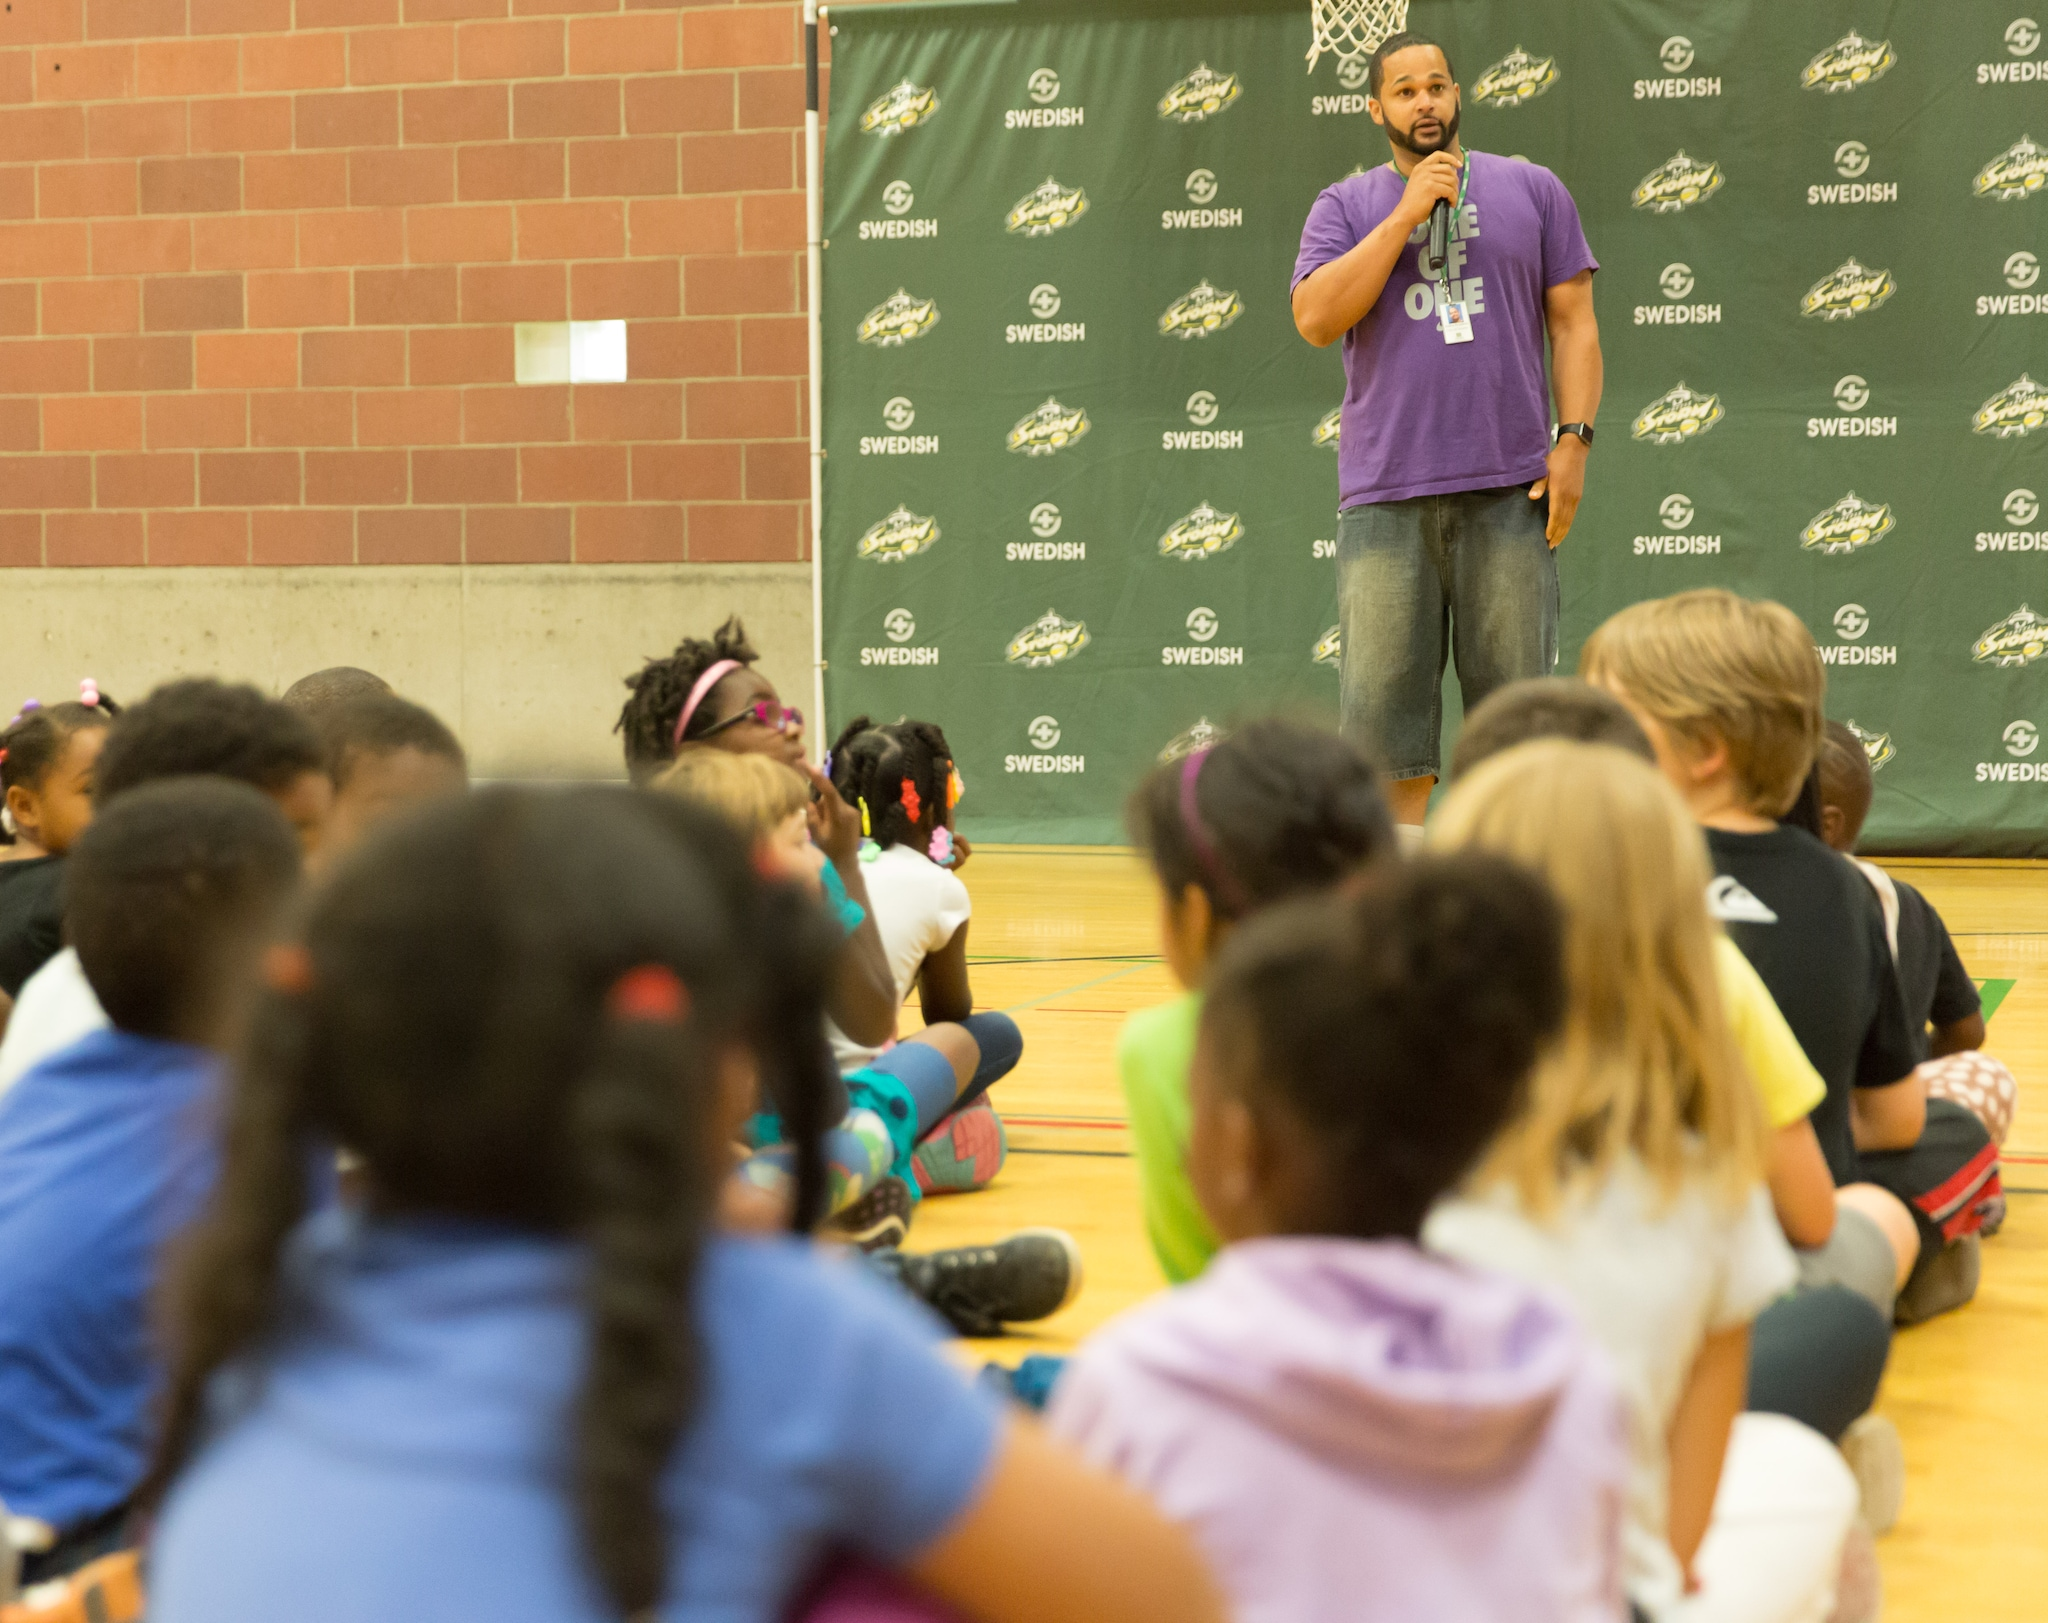 Andre Franklin, from the teen and young adult unit of Seattle Parks and Recreation, welcomes kids to the event. (Neil Enns/Storm Photos)